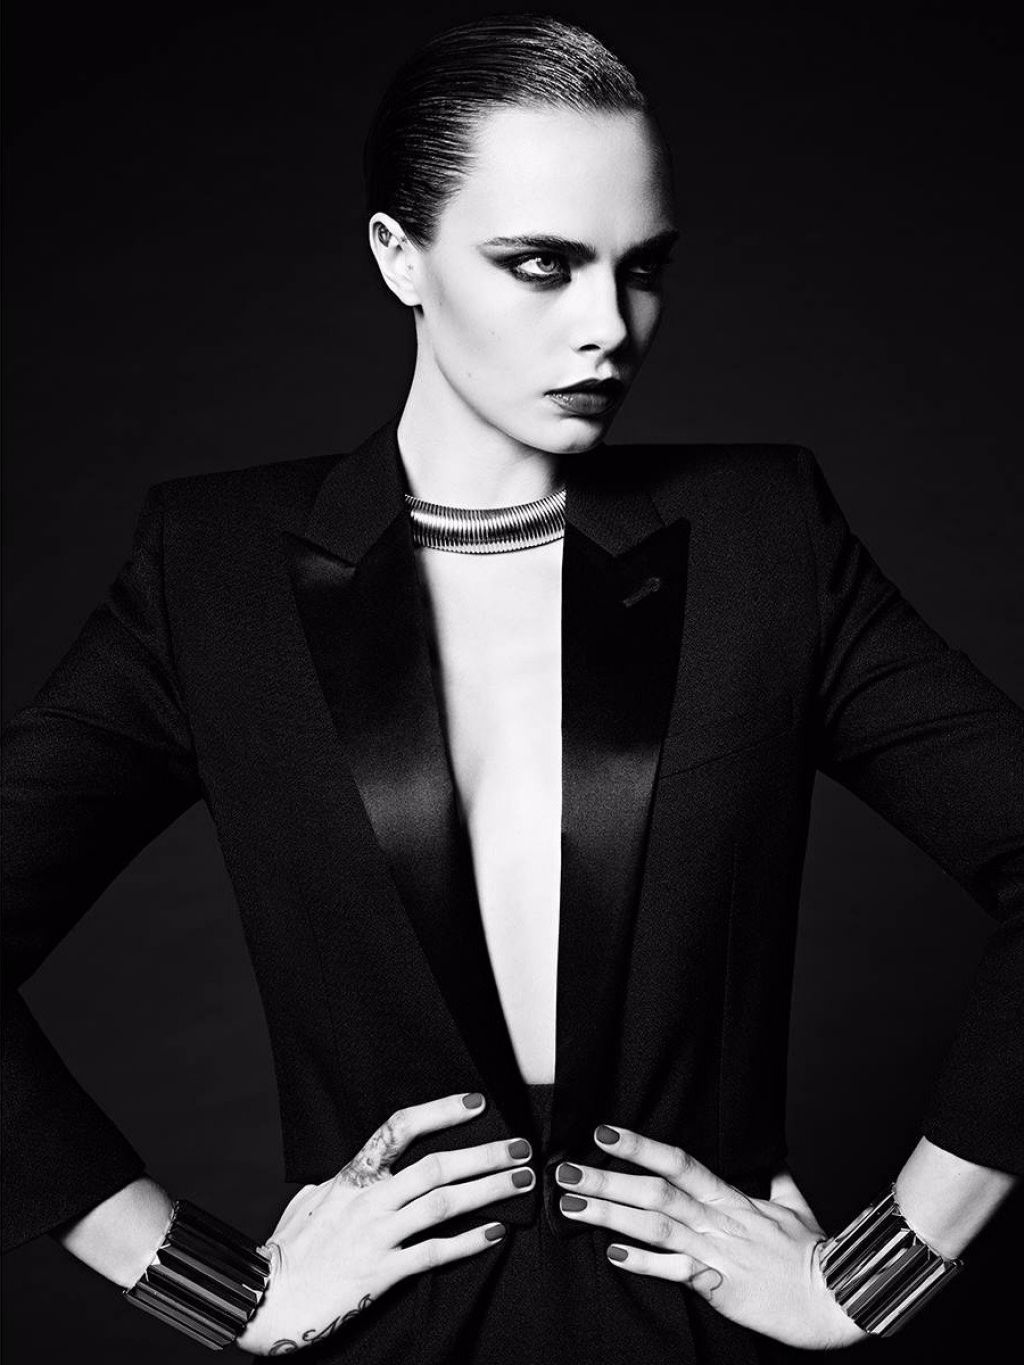 cara-delevingne-photoshoot-for-saint-laurent-le-smoking-2016-2